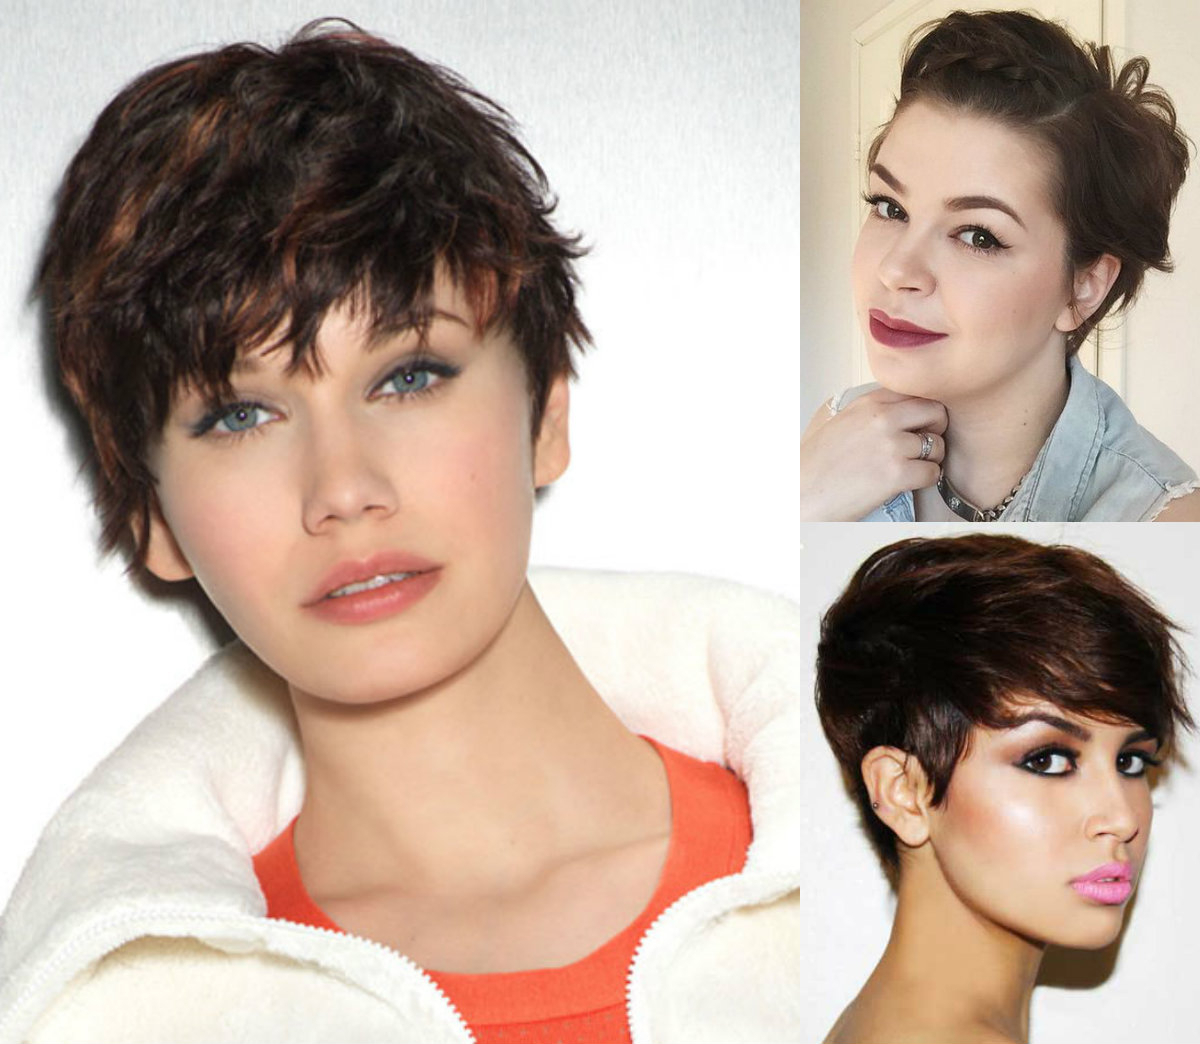 Best Pixie Haircuts For Round Faces 2017 | Hairdrome Within Pixie Hairstyles For Round Faces (View 11 of 20)